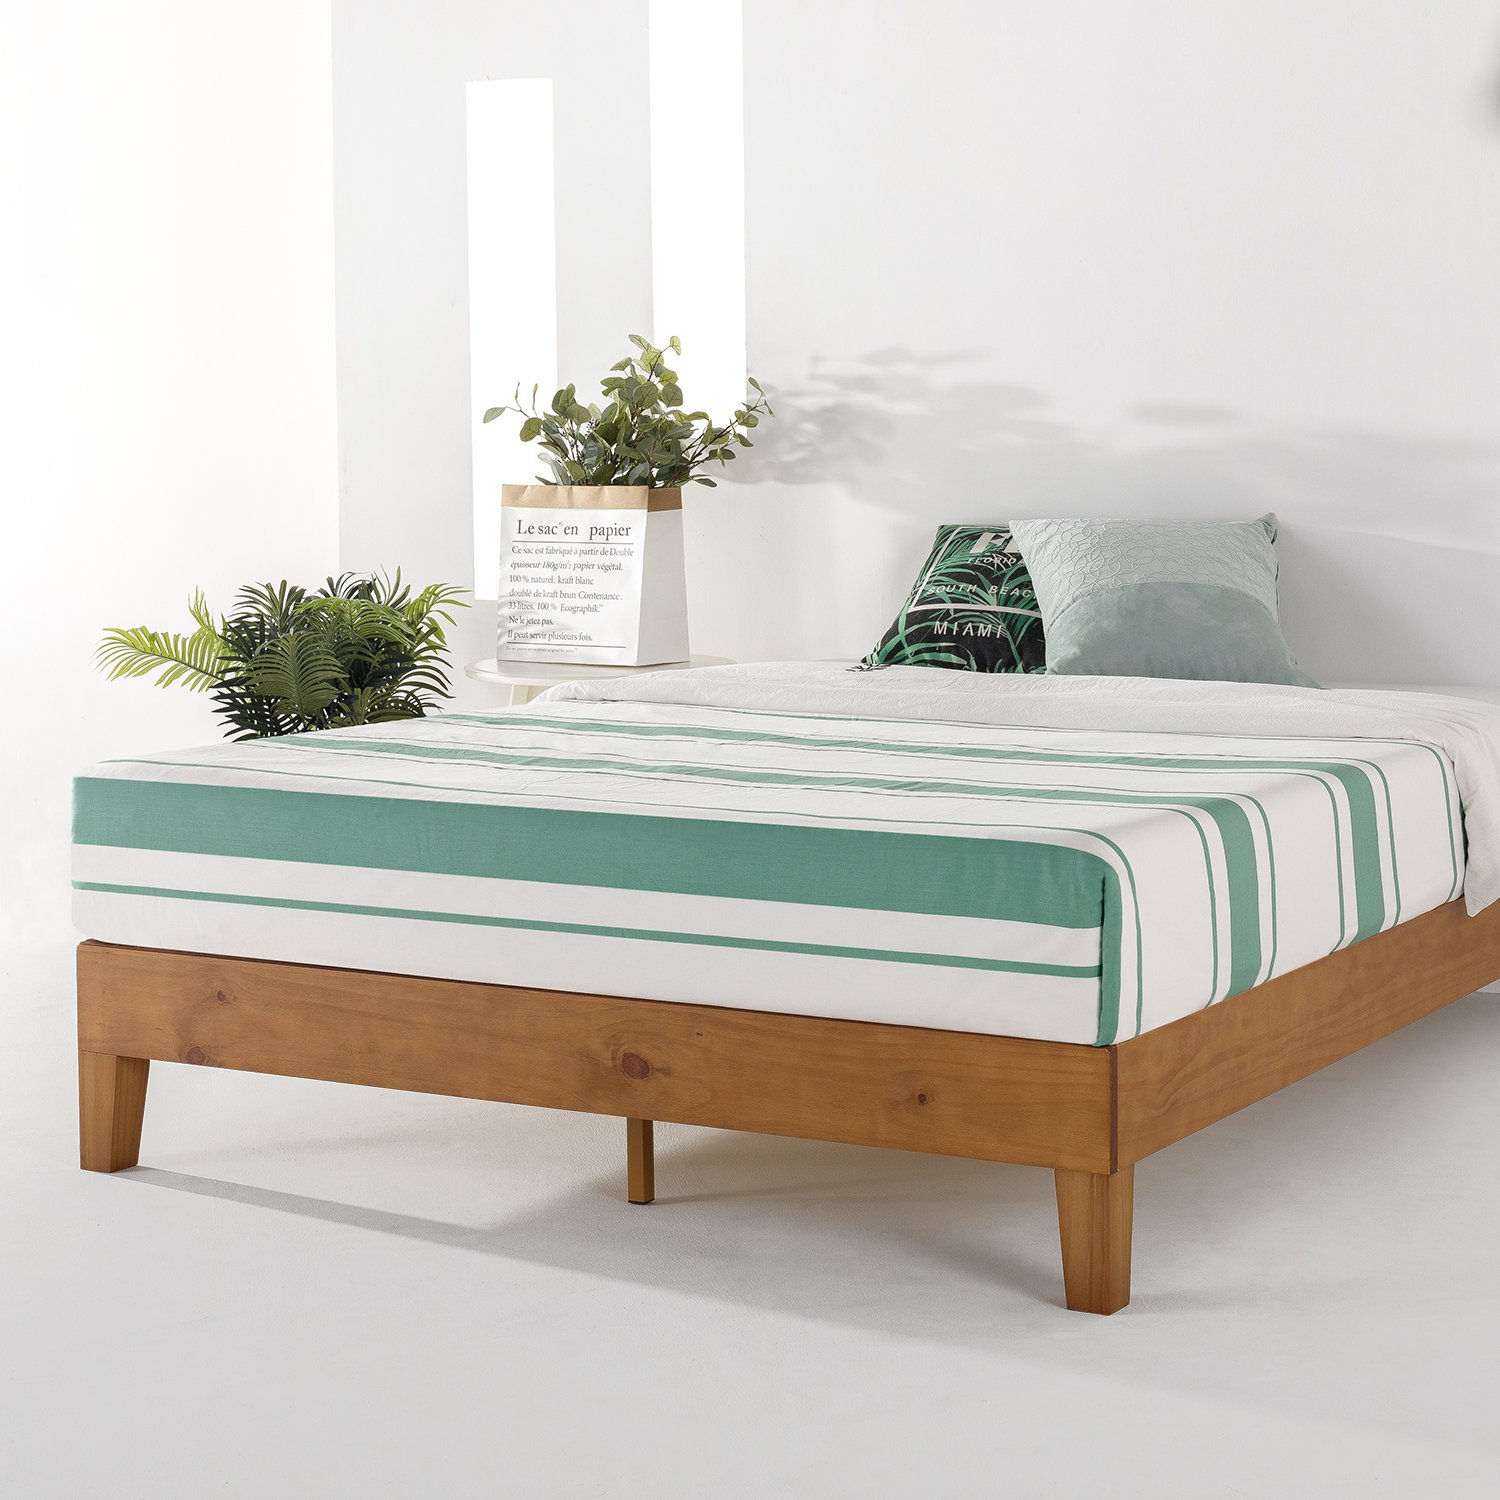 Mellow 12'' Grand Soild Wood Platform Bed Frame w/Wooden Slats (No Box Spring Needed) Queen Natural